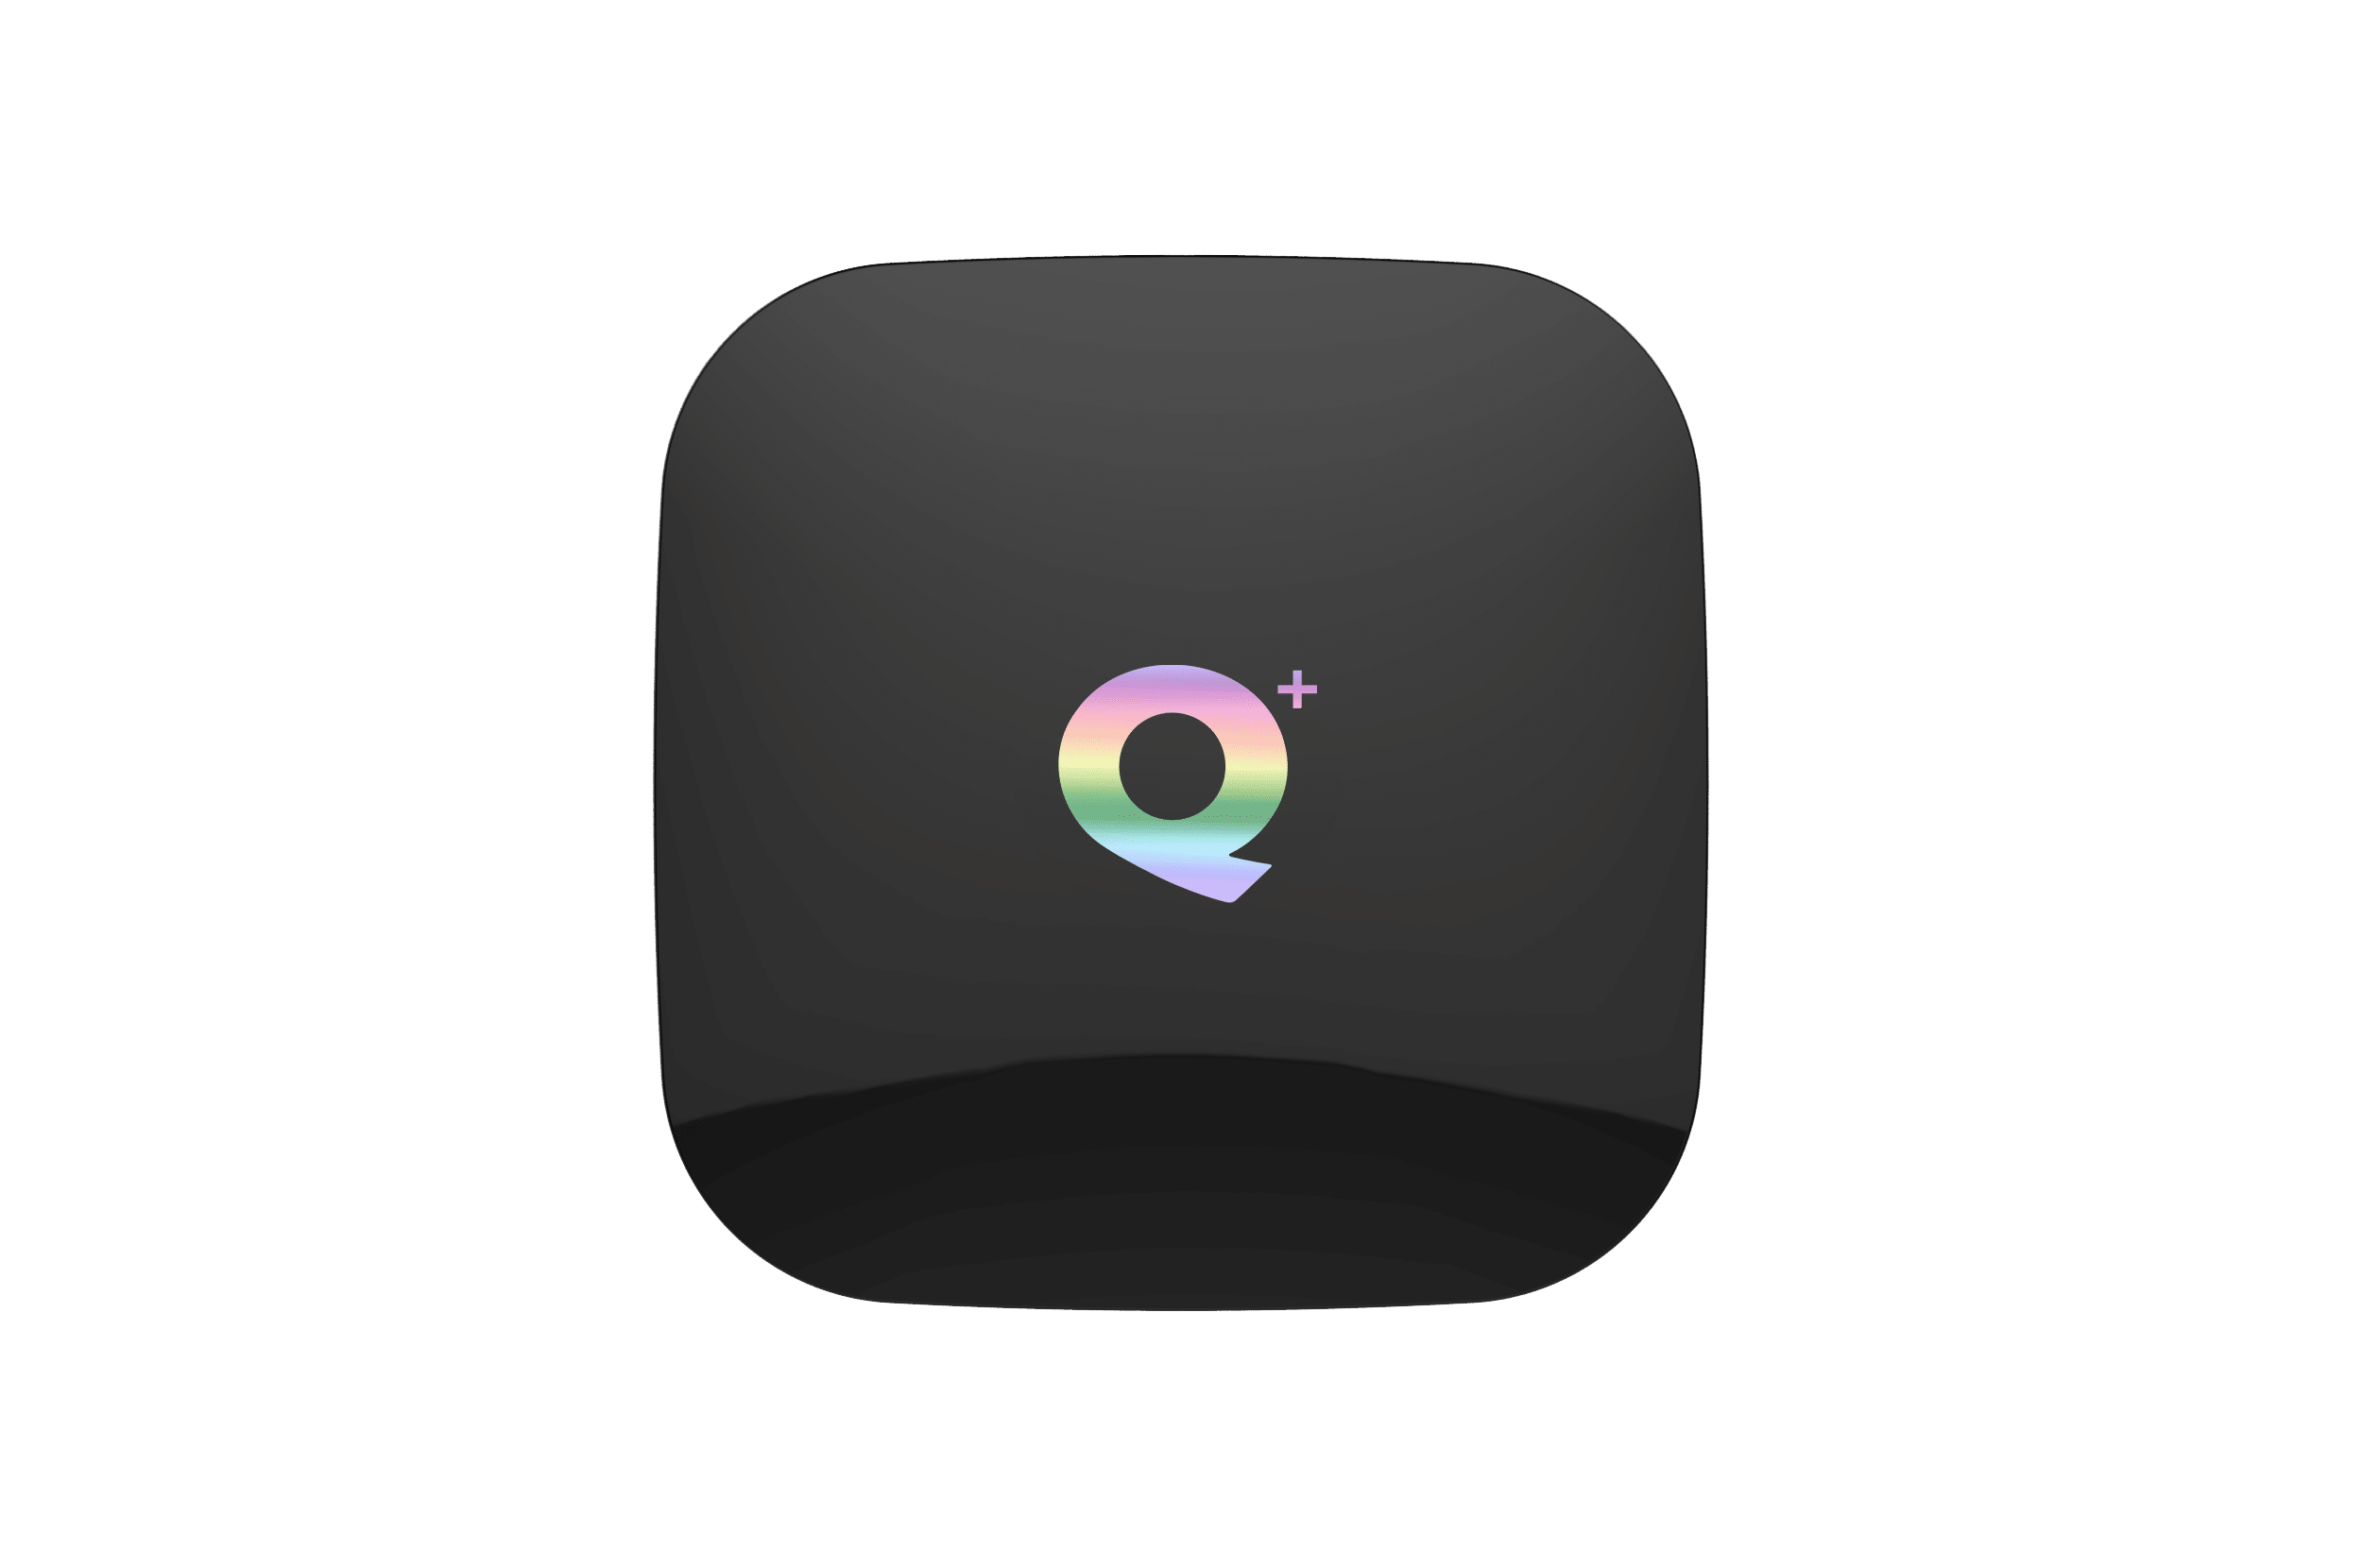 Q Plus H6 Android 8 Oreo Smart Powered TV Box - Top View